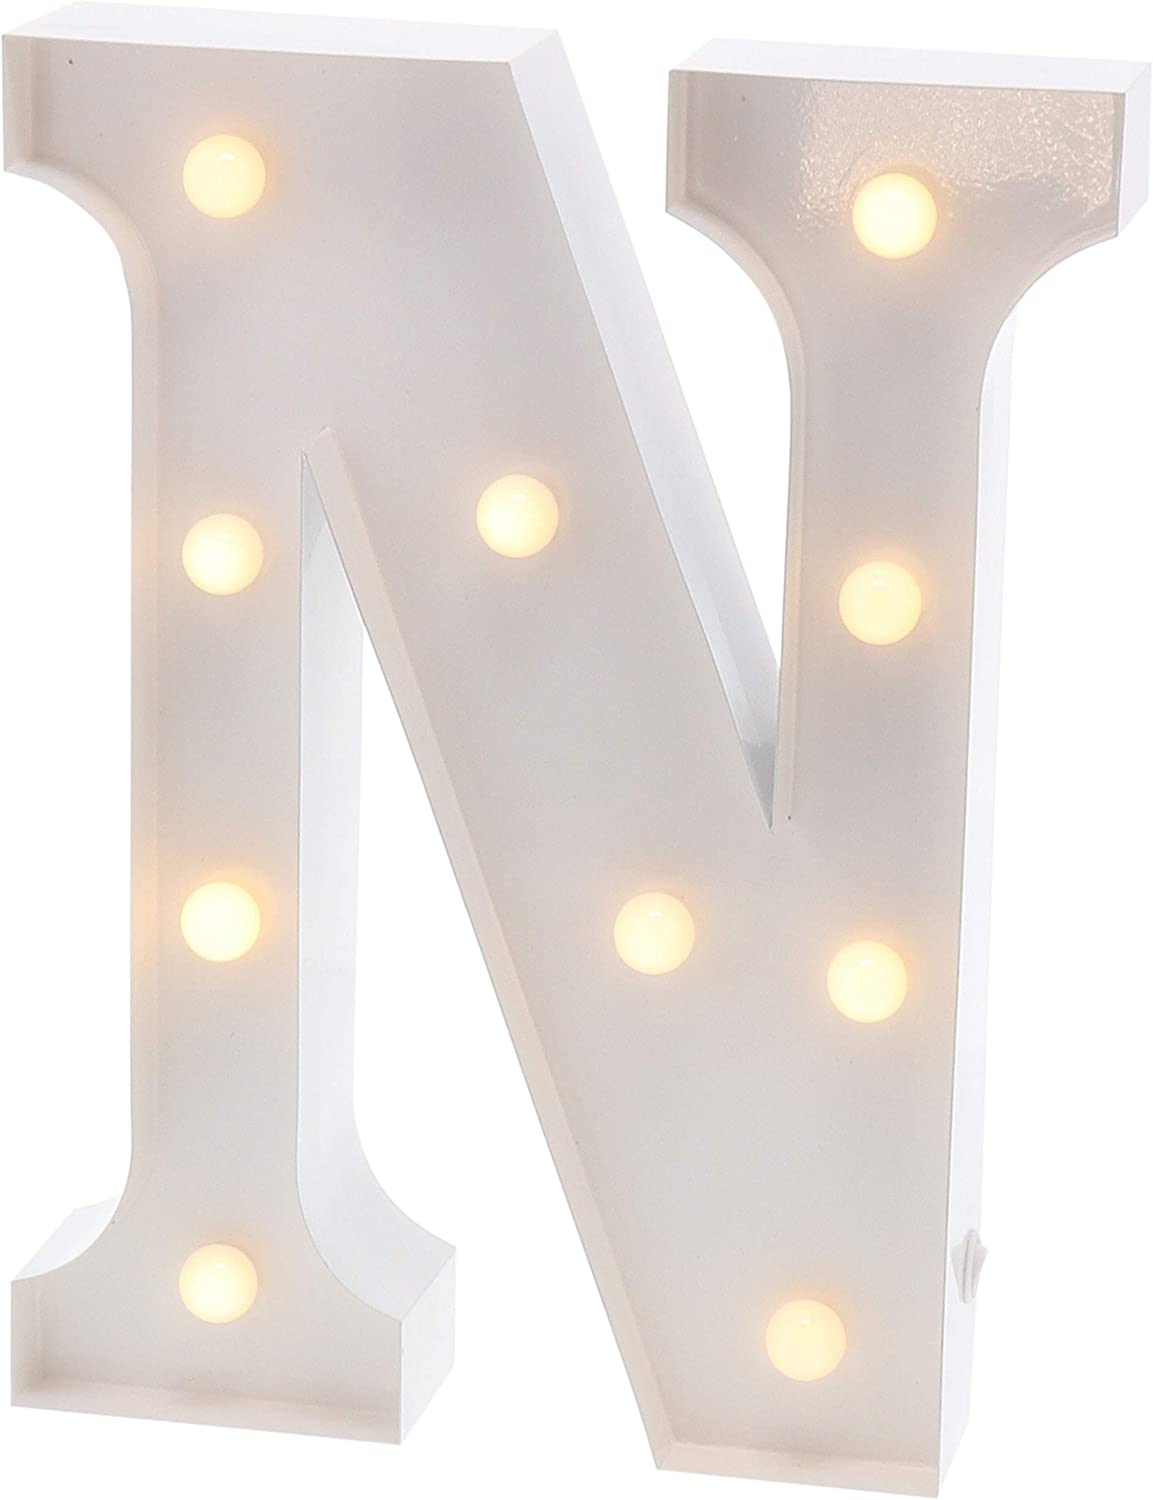 """Barnyard Designs Metal Marquee Letter N Light Up Wall Initial Wedding, Bar, Home and Nursery Letter Decoration 12"""" (White)"""